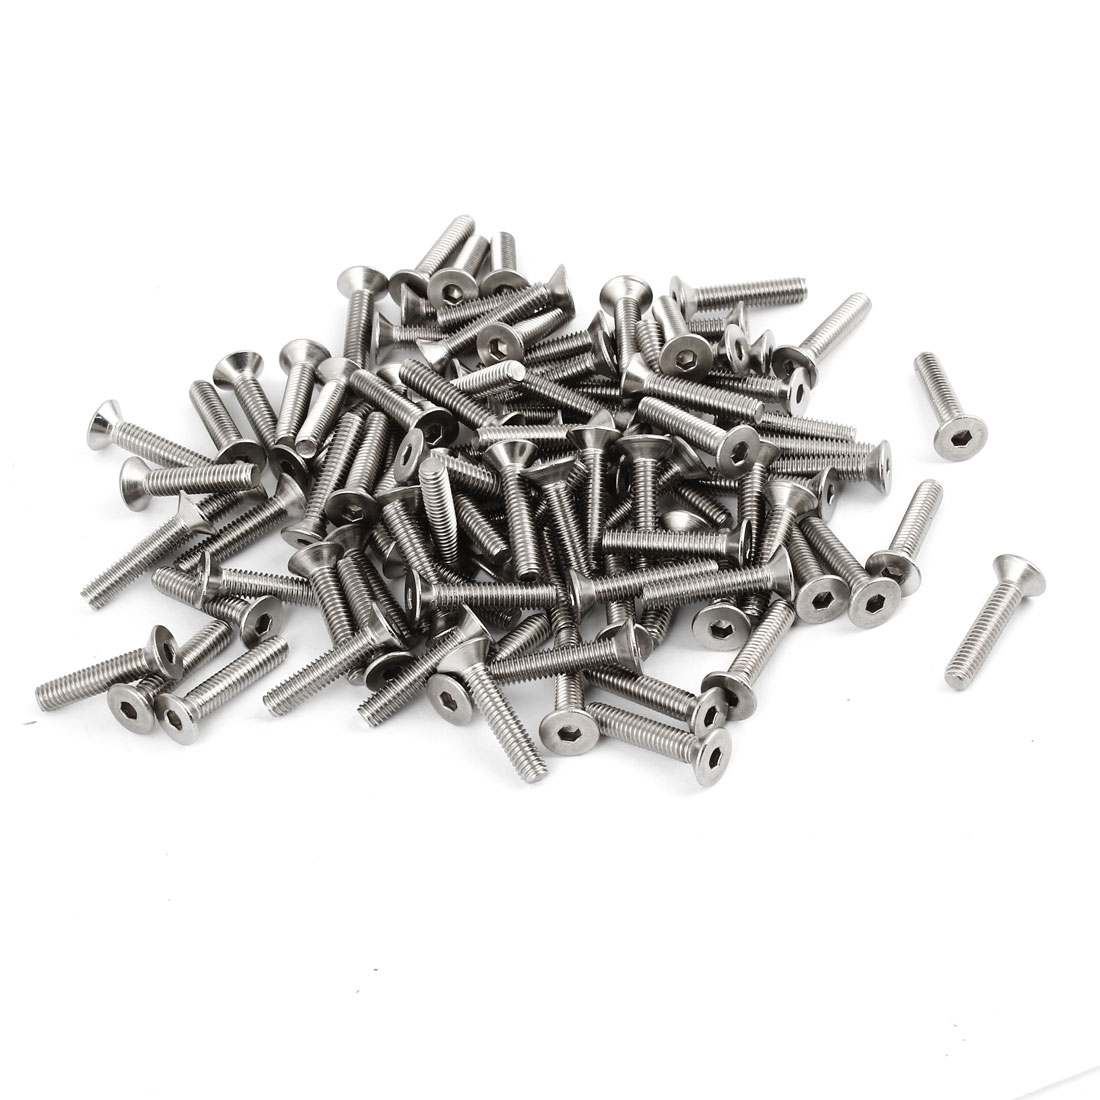 100 Pcs 304HC Stainless Steel Countersunk Flat Head Hex Socket Bolt Screw M4x20mm